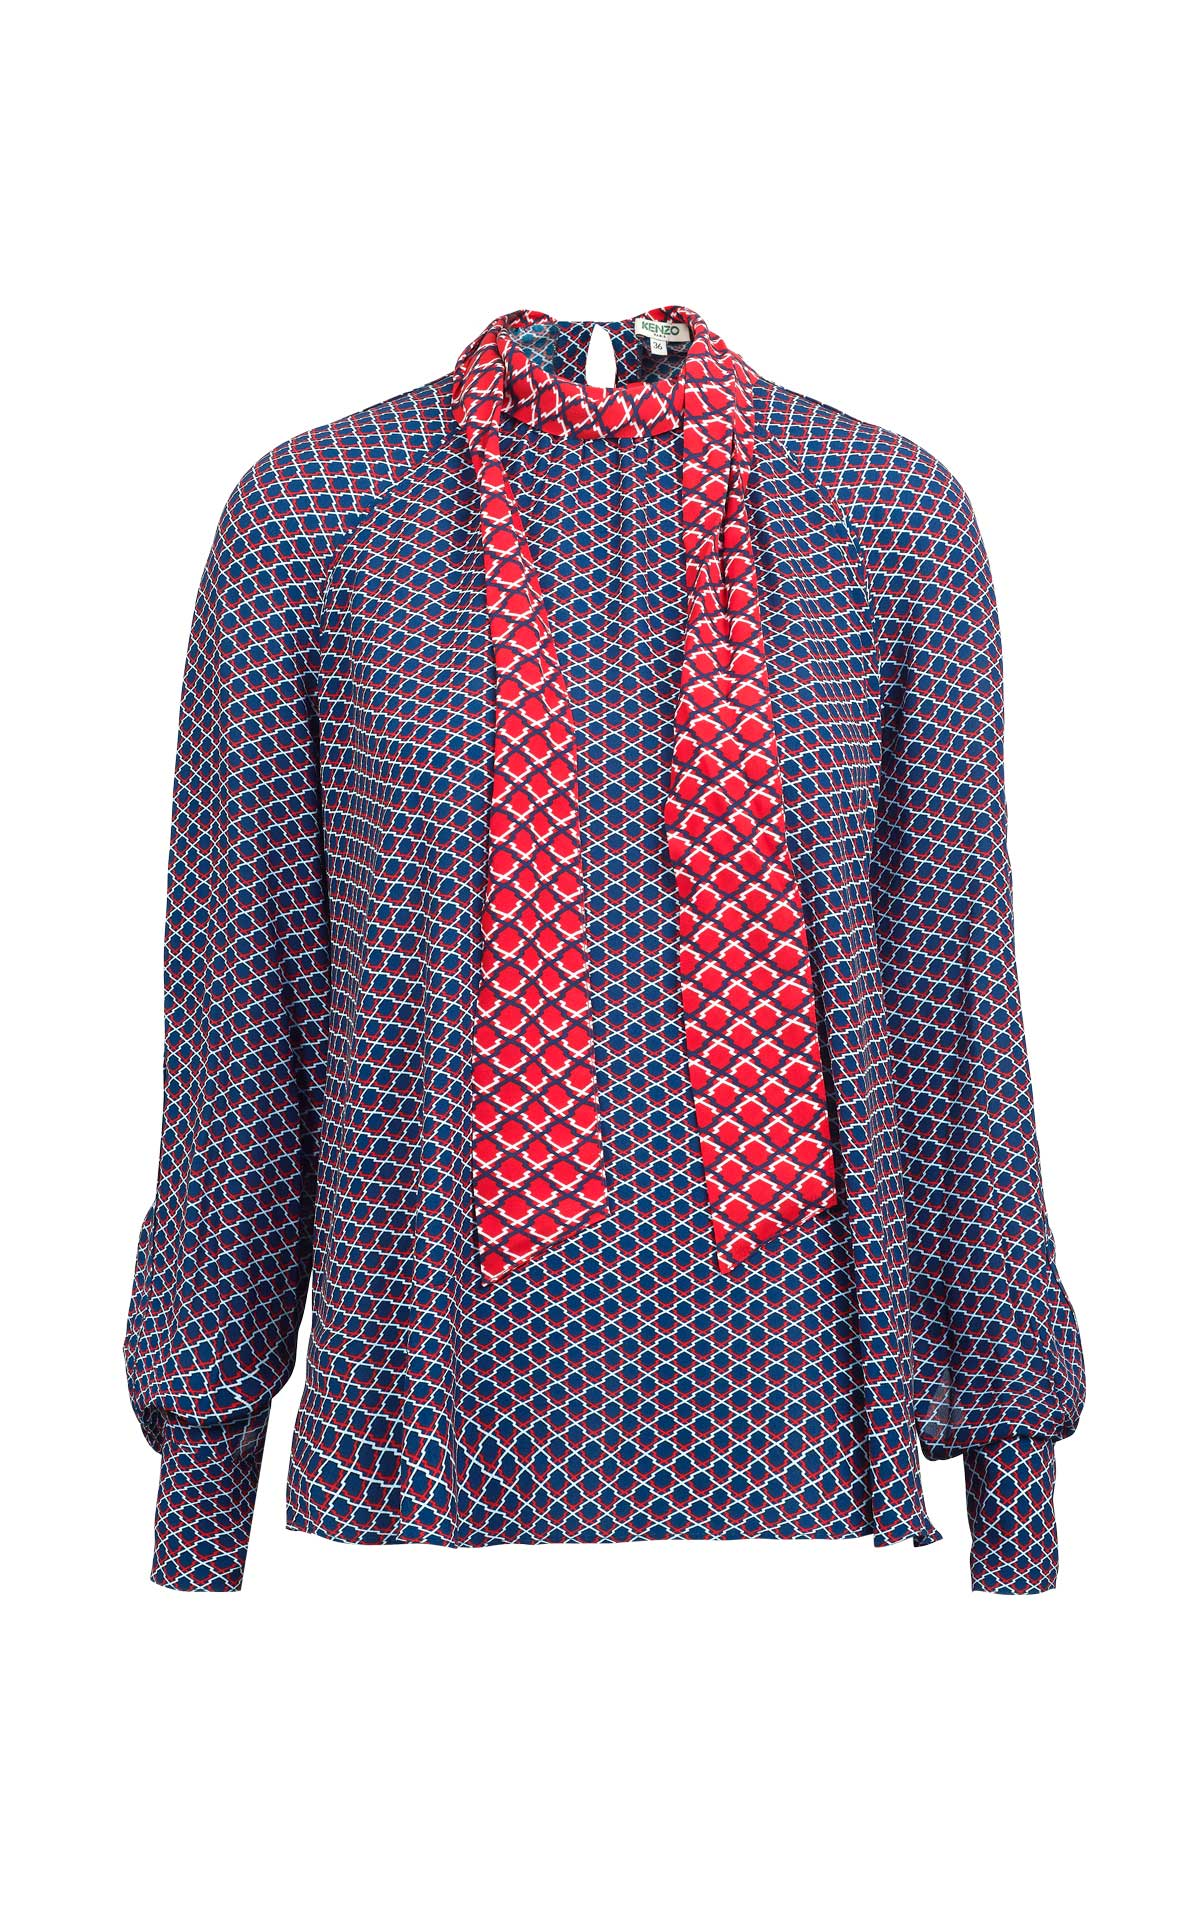 Printed blue and red blouse Kenzo